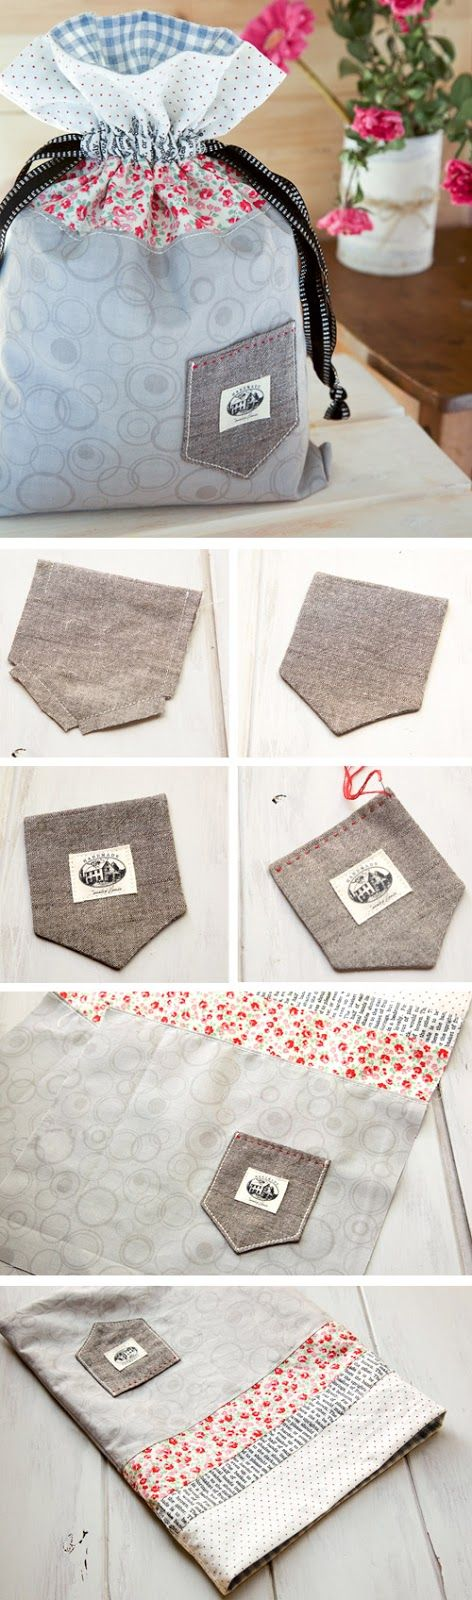 Drawstring Bag String Pouch. DIY Tutorial with Photos.  http://www.handmadiya.com/2015/11/how-to-make-drawstring-bag.html